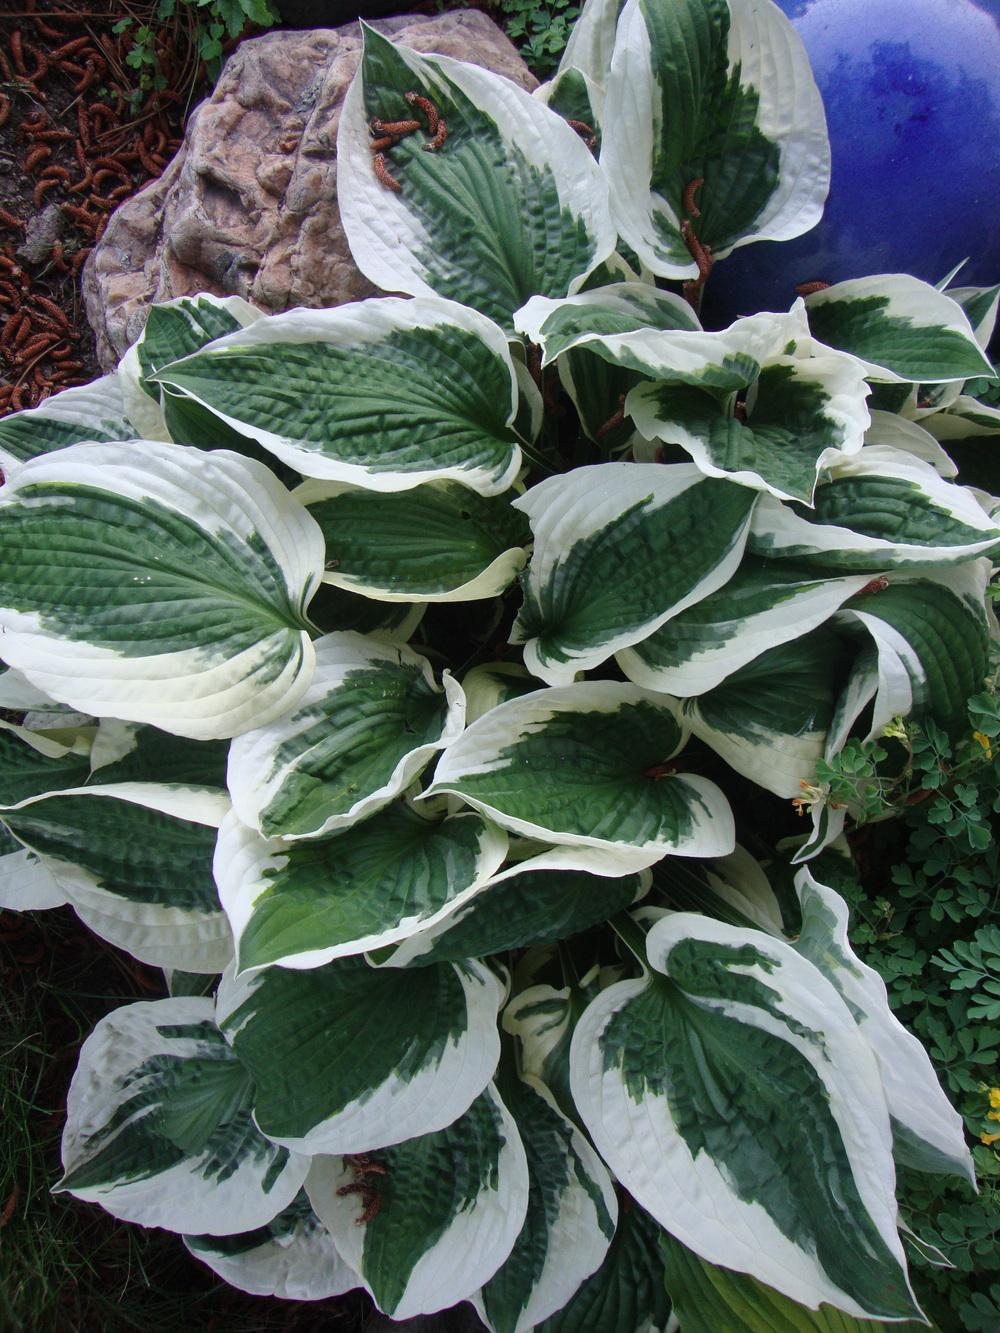 Photo Of The Entire Plant Of Hosta Minuteman Posted By Paul2032